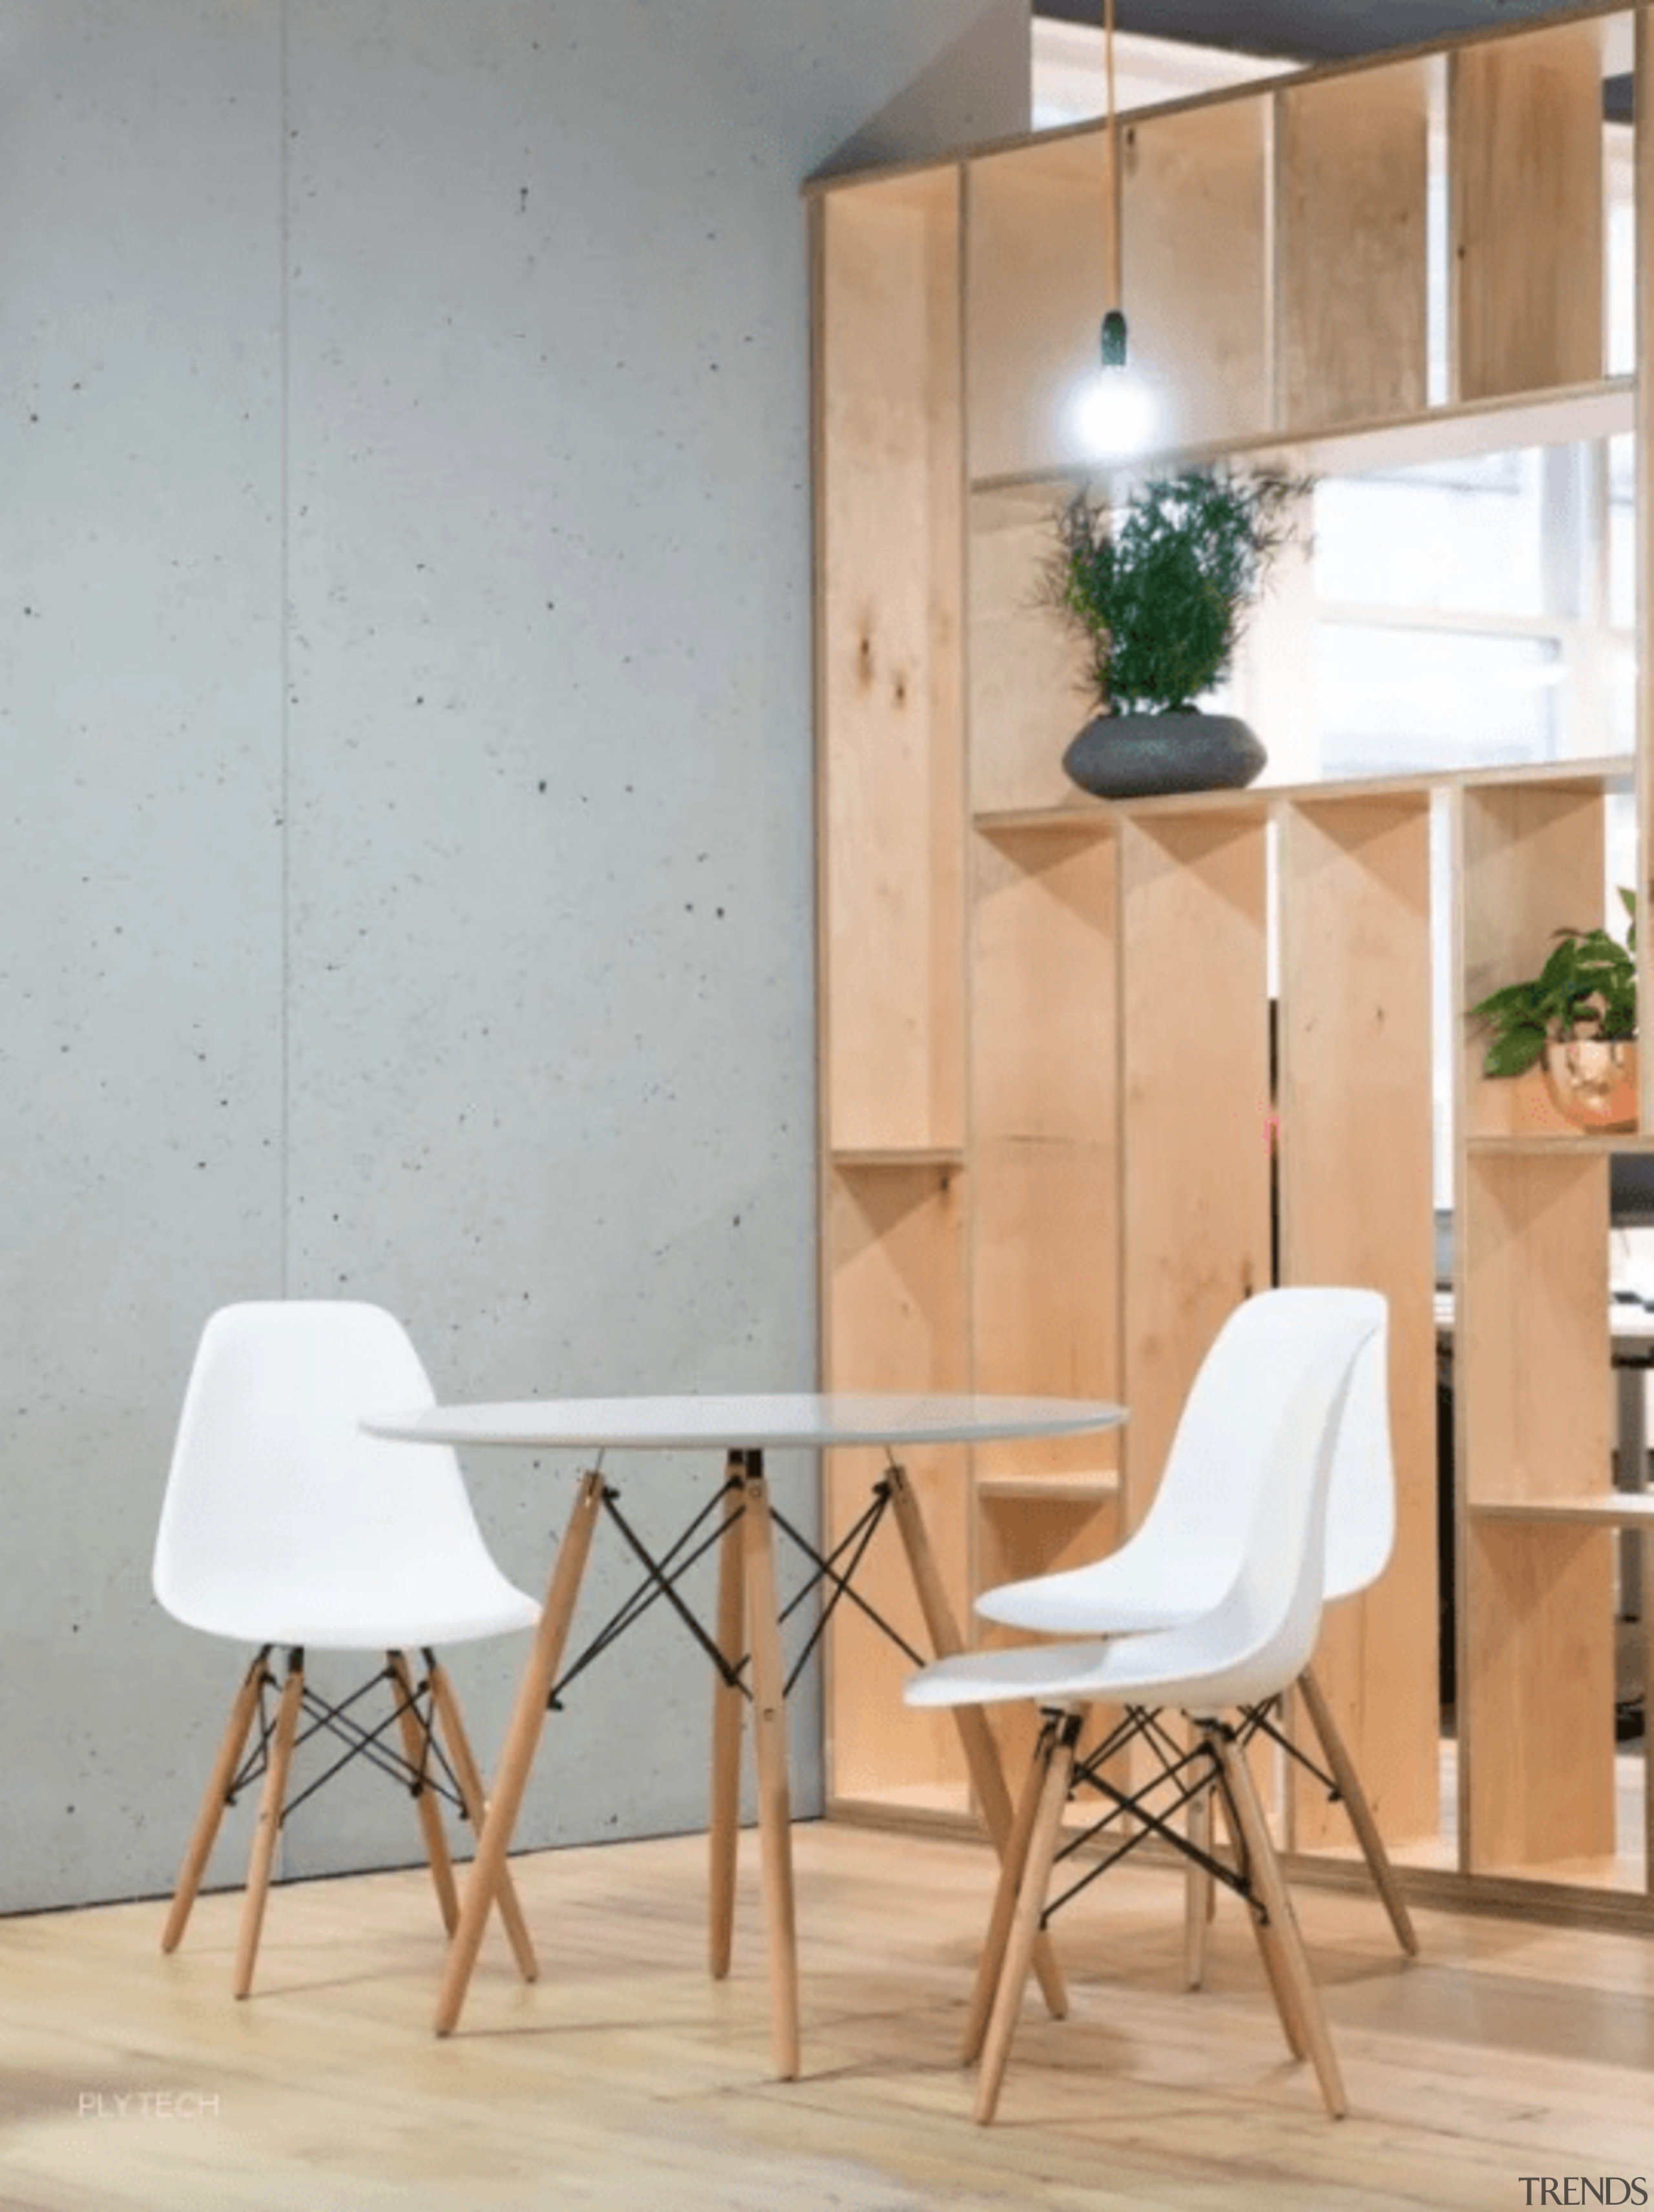 Even for concrete, these panels are extremely lightweight chair, floor, flooring, furniture, interior design, lamp, light fixture, table, wall, wood, gray, orange